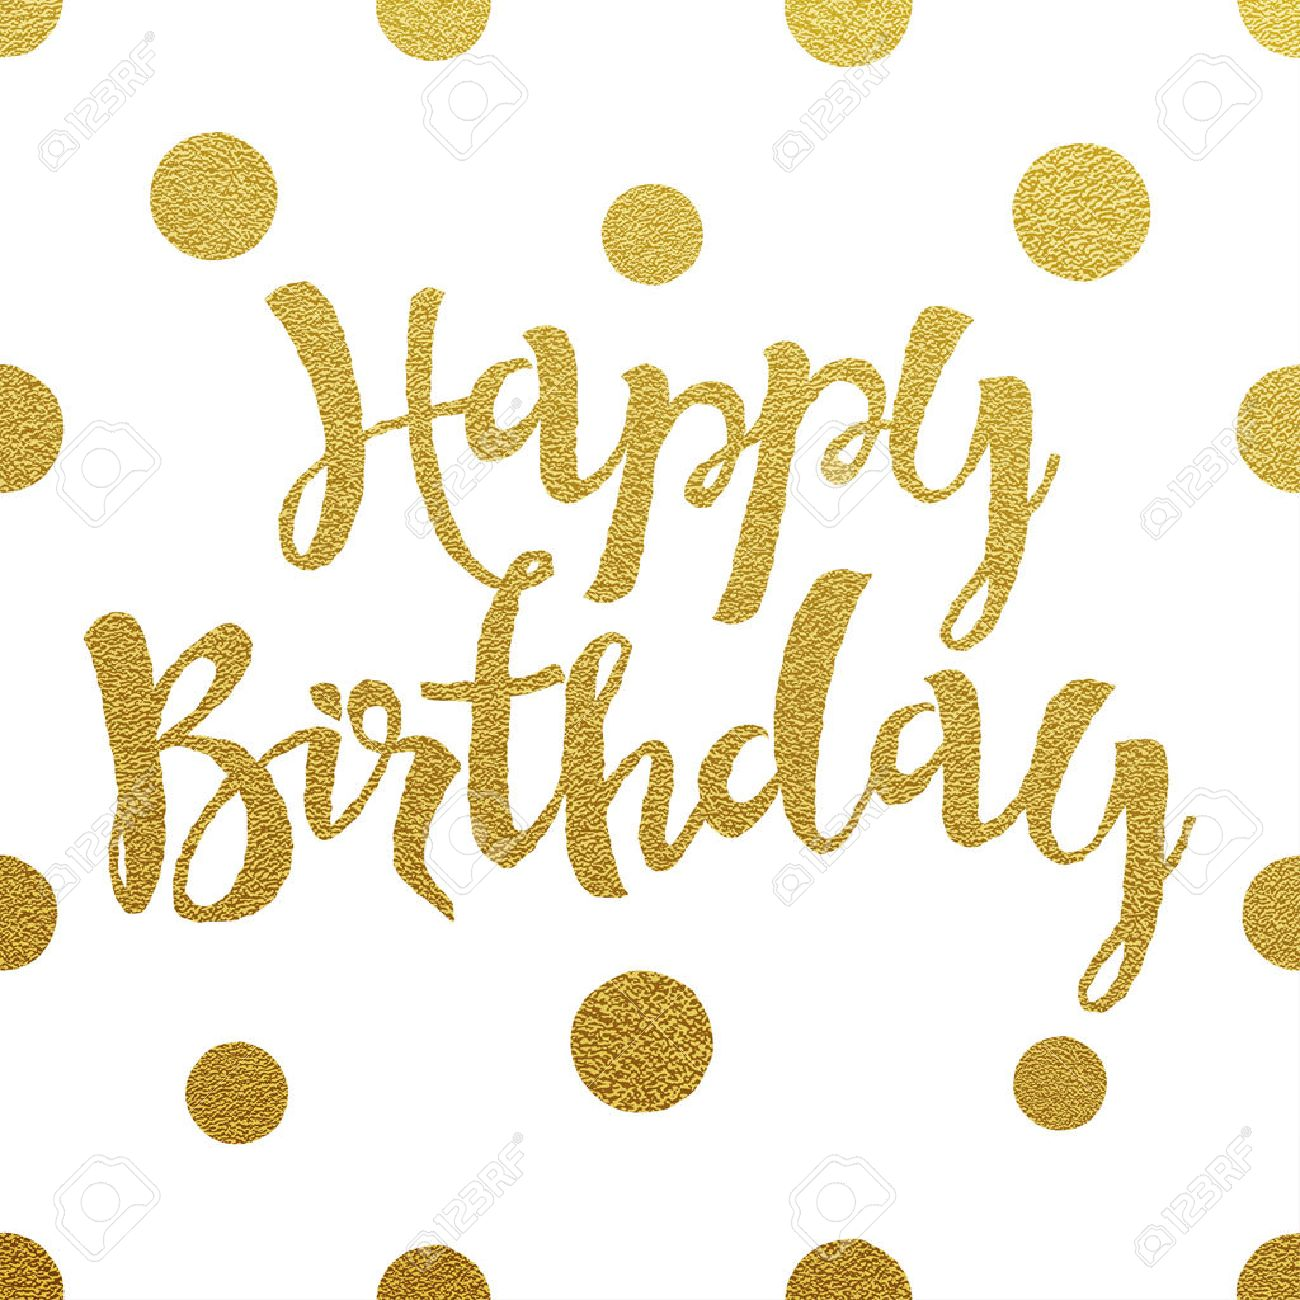 Happy Birthday Card With Design Of Gold Letters On White Background